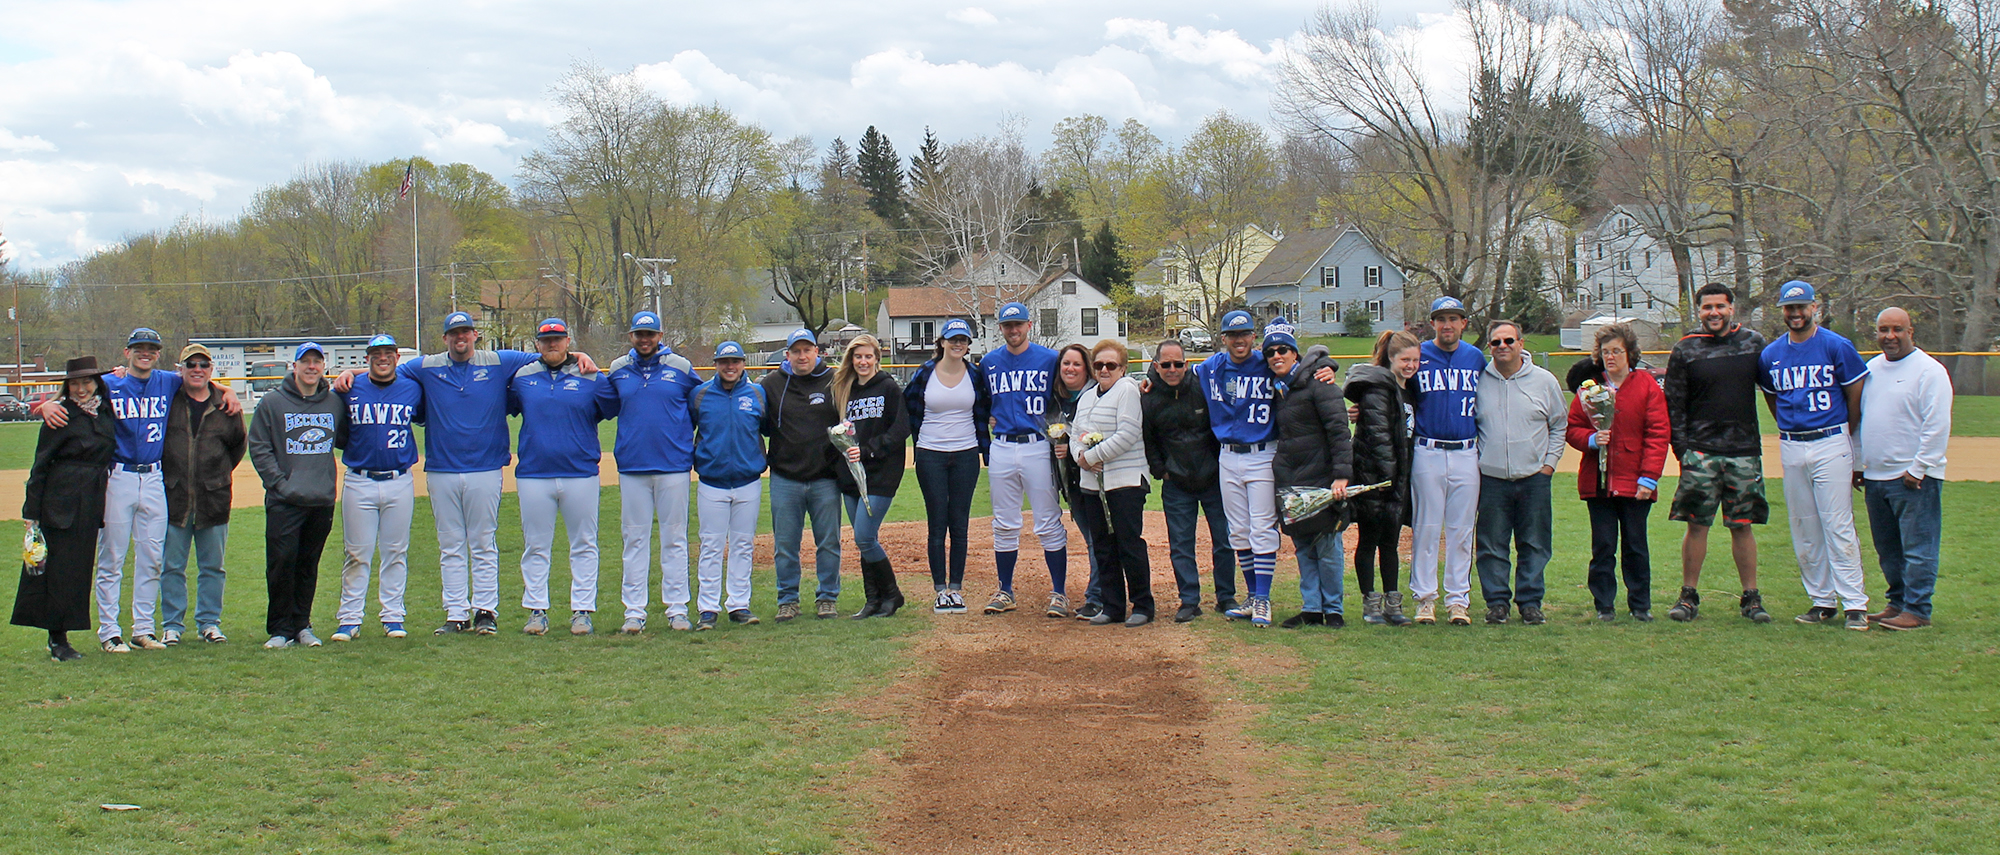 Ventres Hits Walk-Off Homer to Help Hawks Sweep Bulldogs on Senior Day